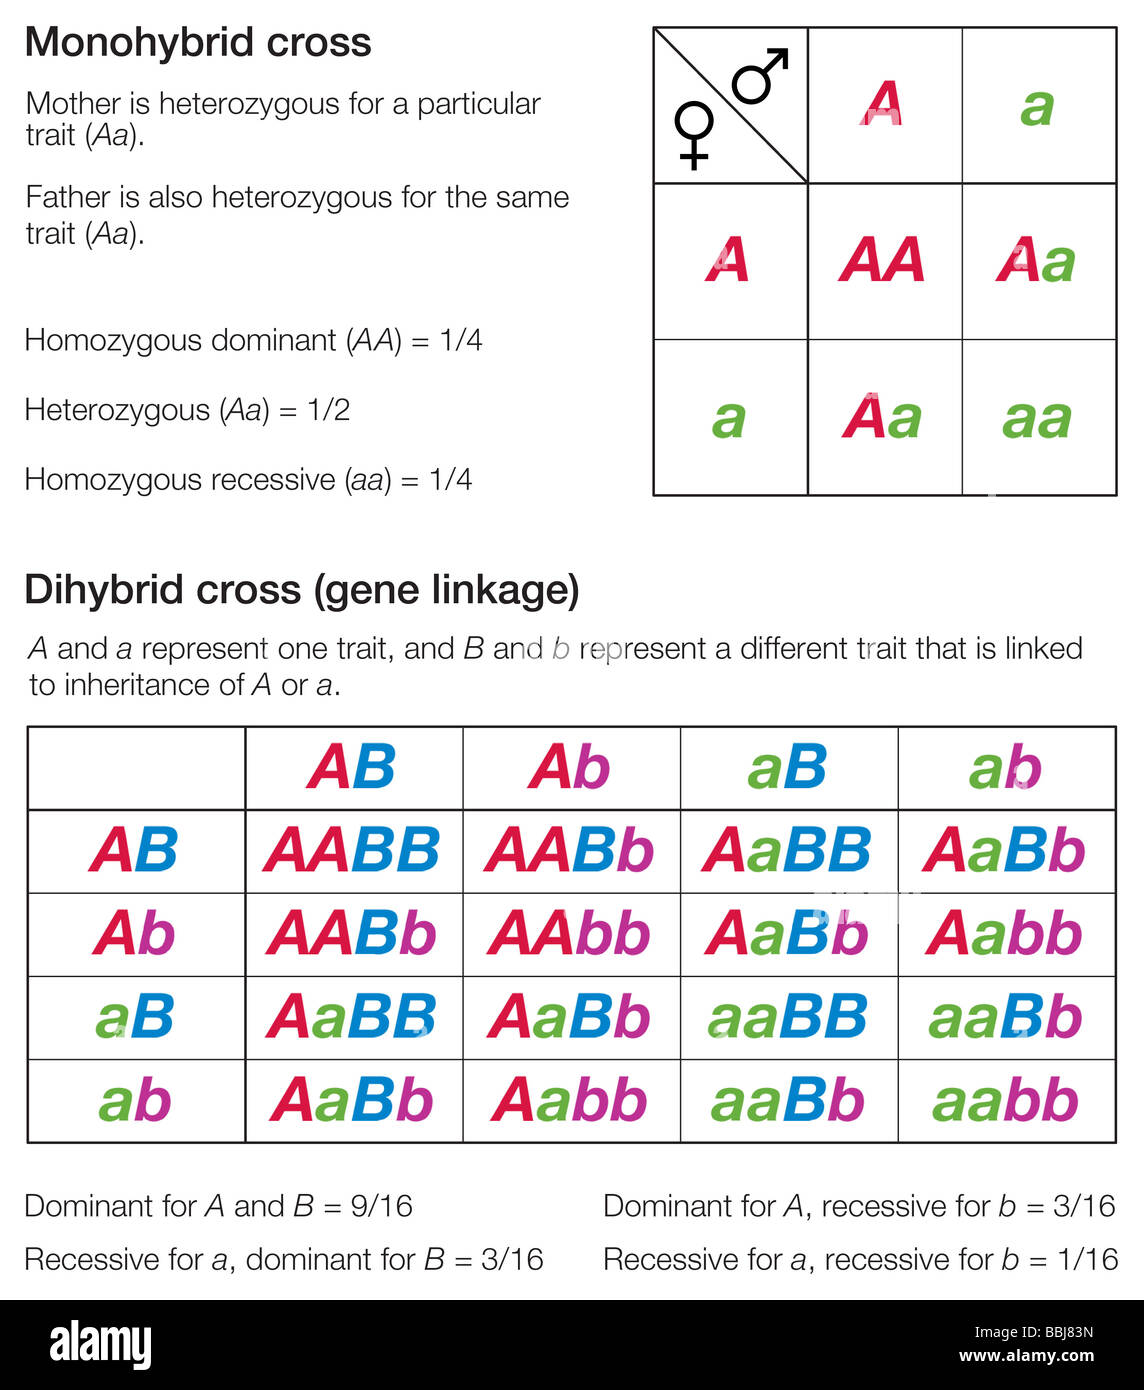 Punnett Squares Of A Monohybrid And A Dihybrid Cross Used